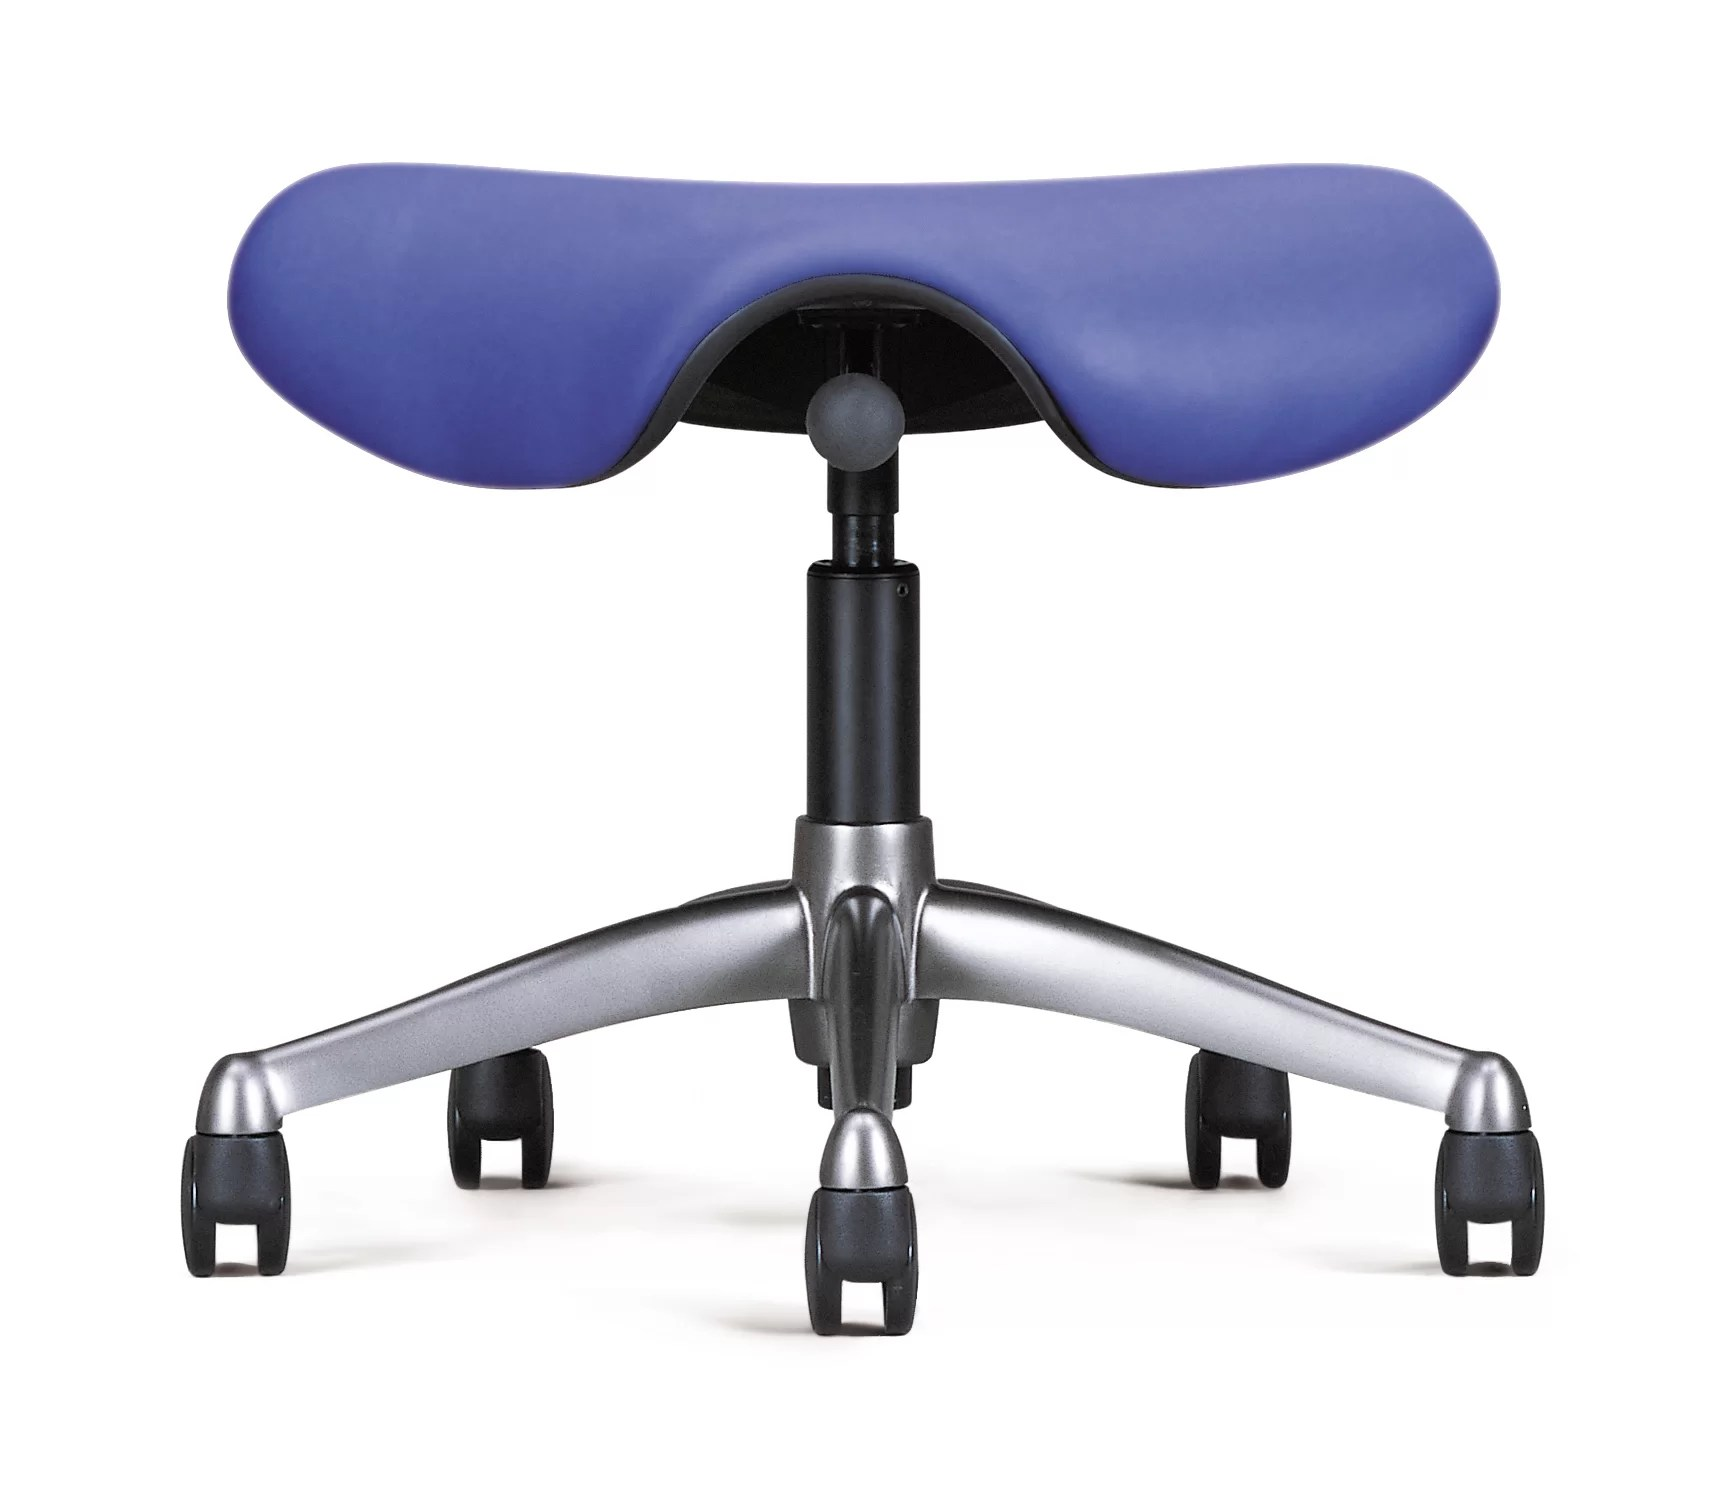 Saddle Office Chair Height Adjustable Saddle Seat With Casters